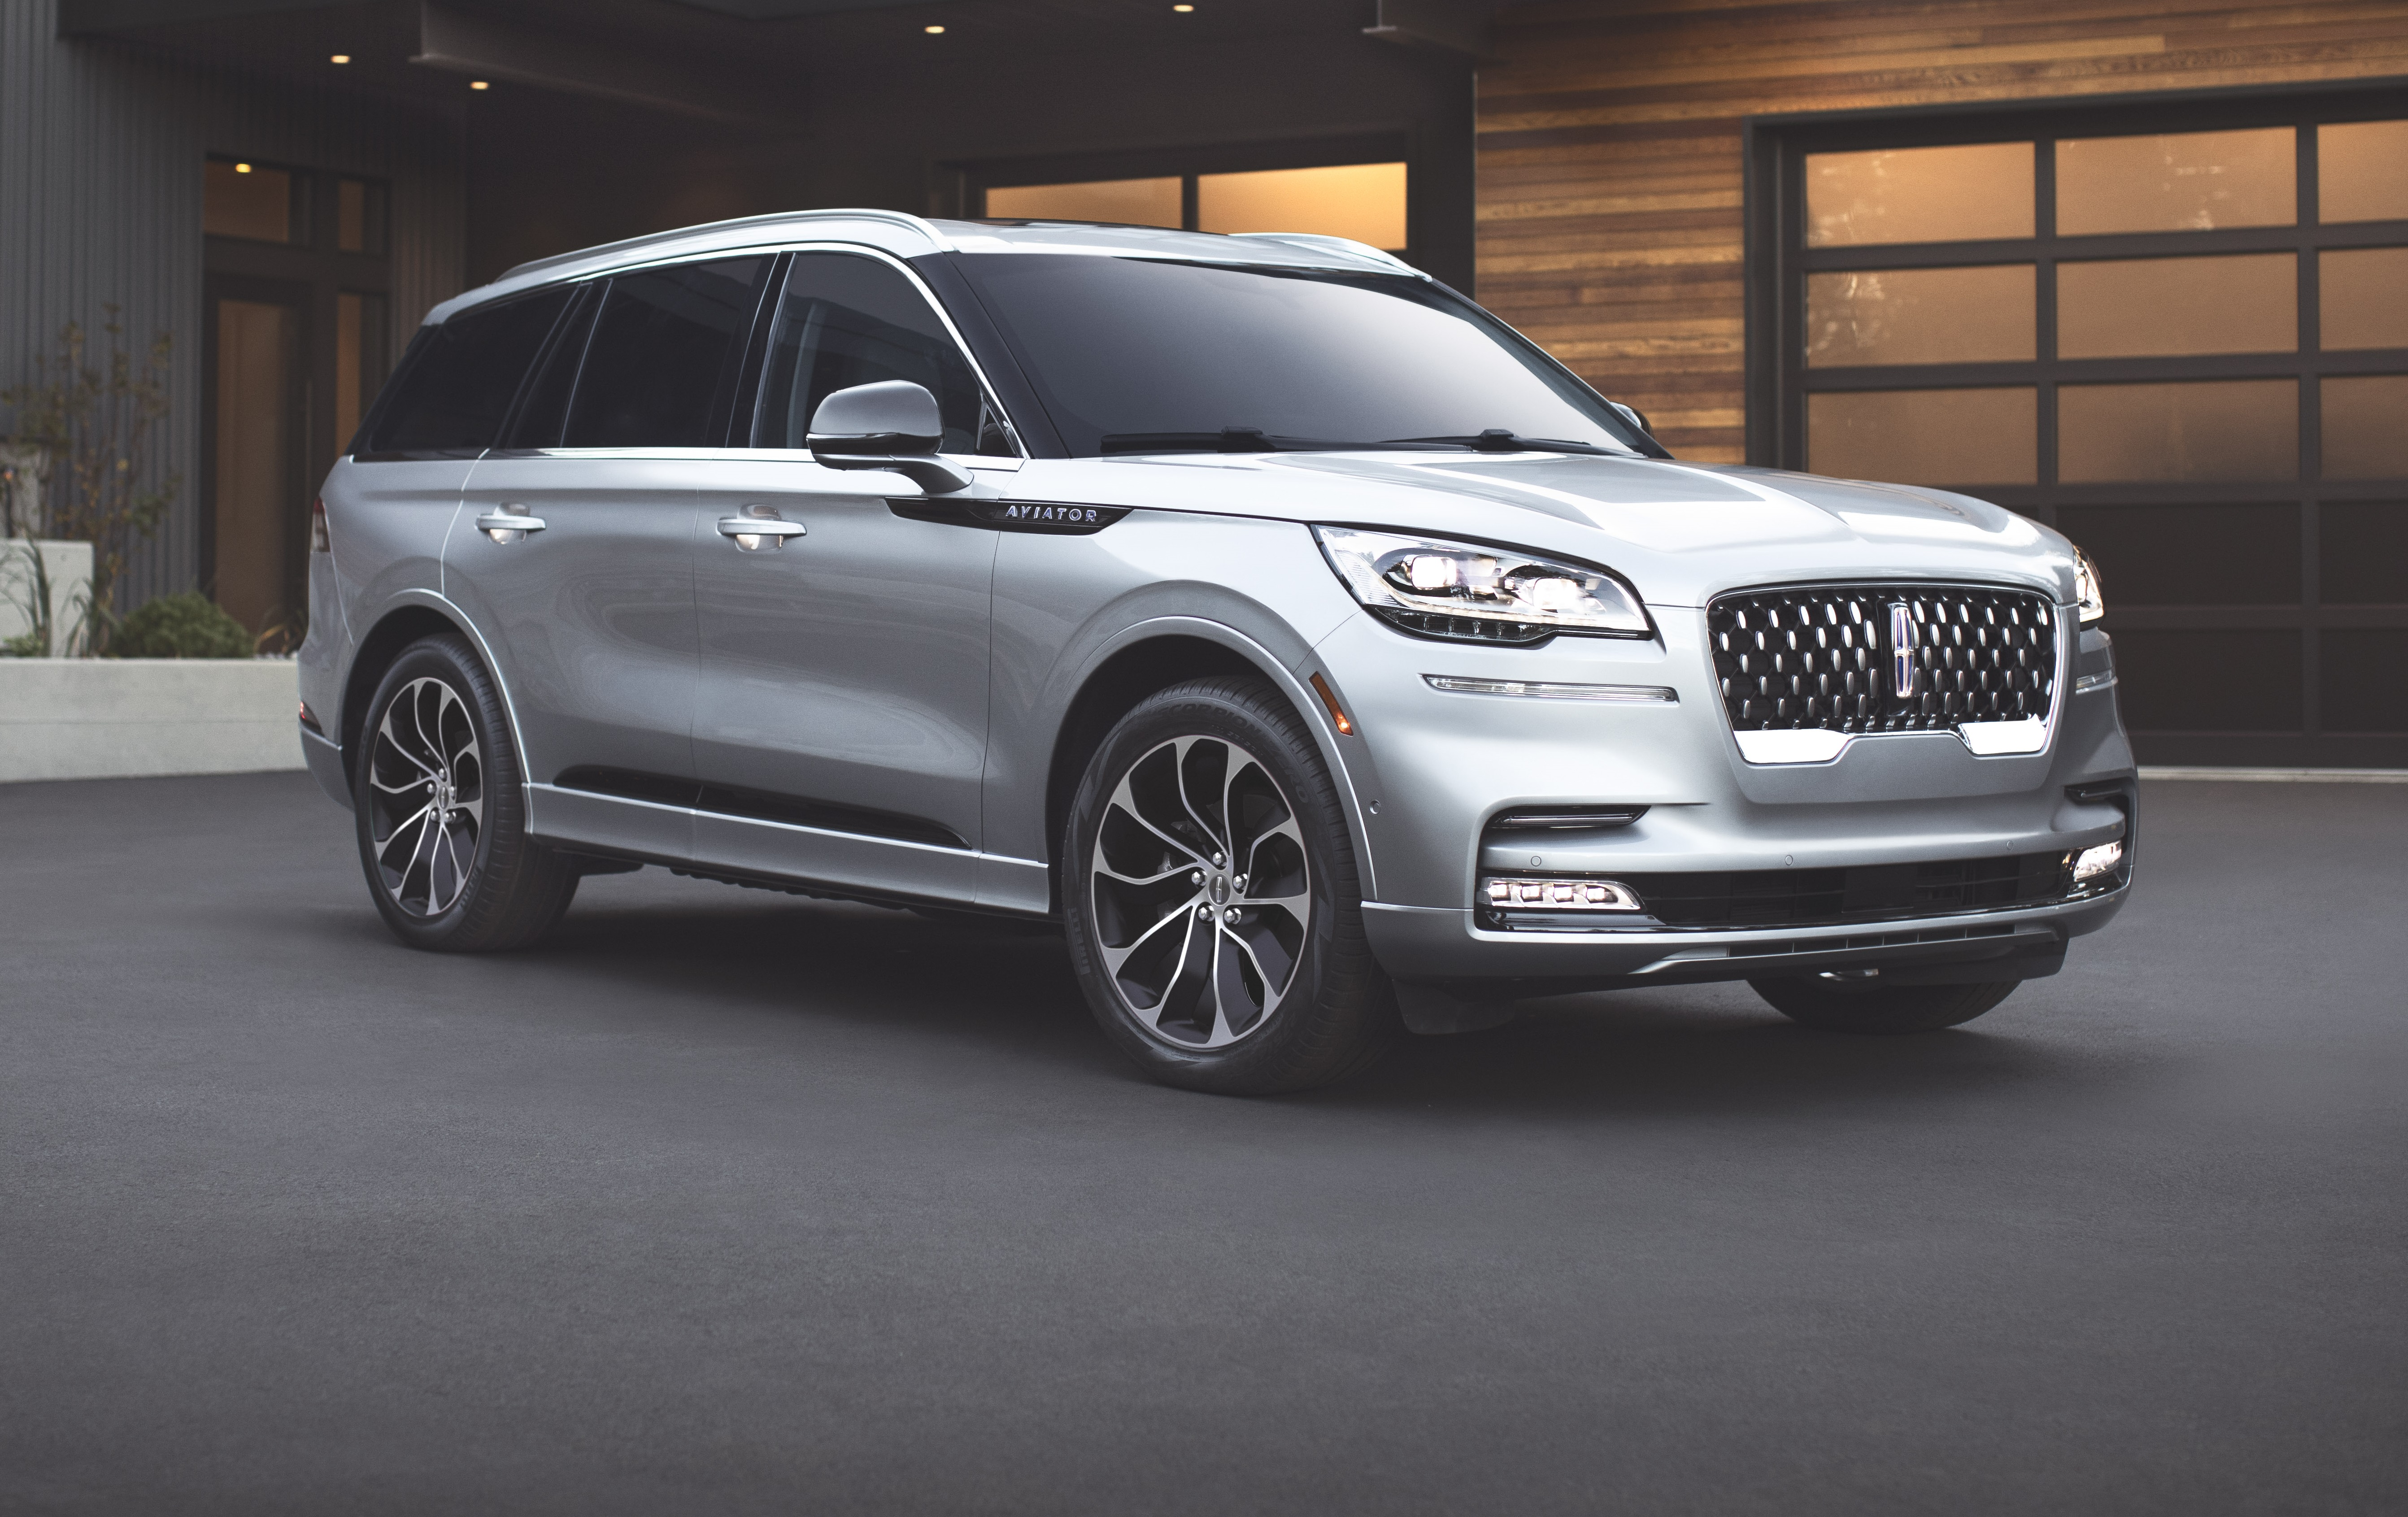 2020 Lincoln Aviator Grand Touring: Worth Every Penny